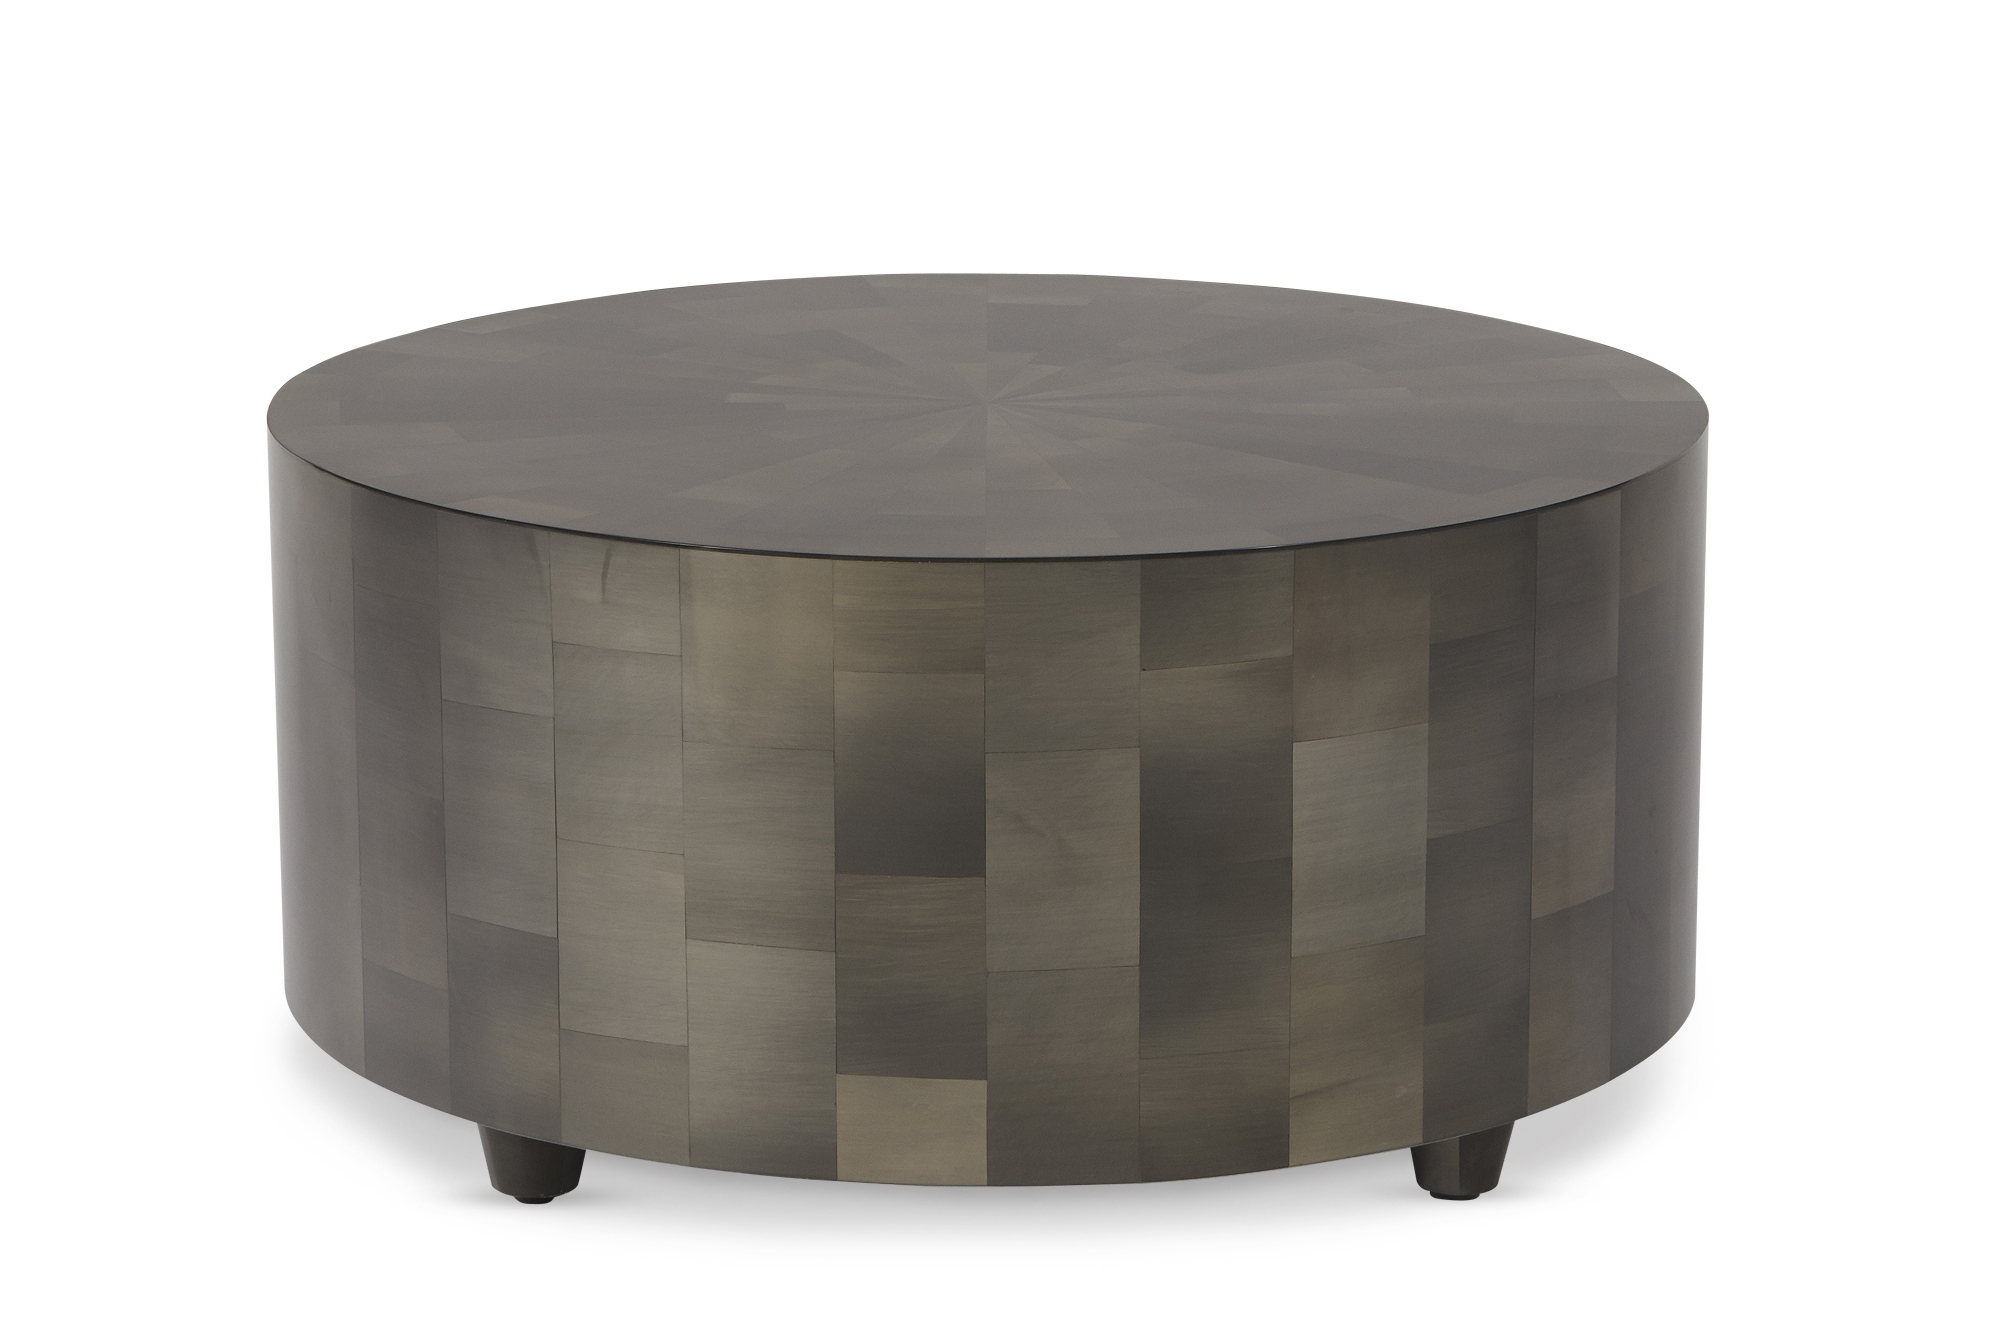 Adeline Large Cocktail Table : Living Room : Cocktail Tables : Oly With Regard To Latest Kai Large Cocktail Tables (Gallery 19 of 20)